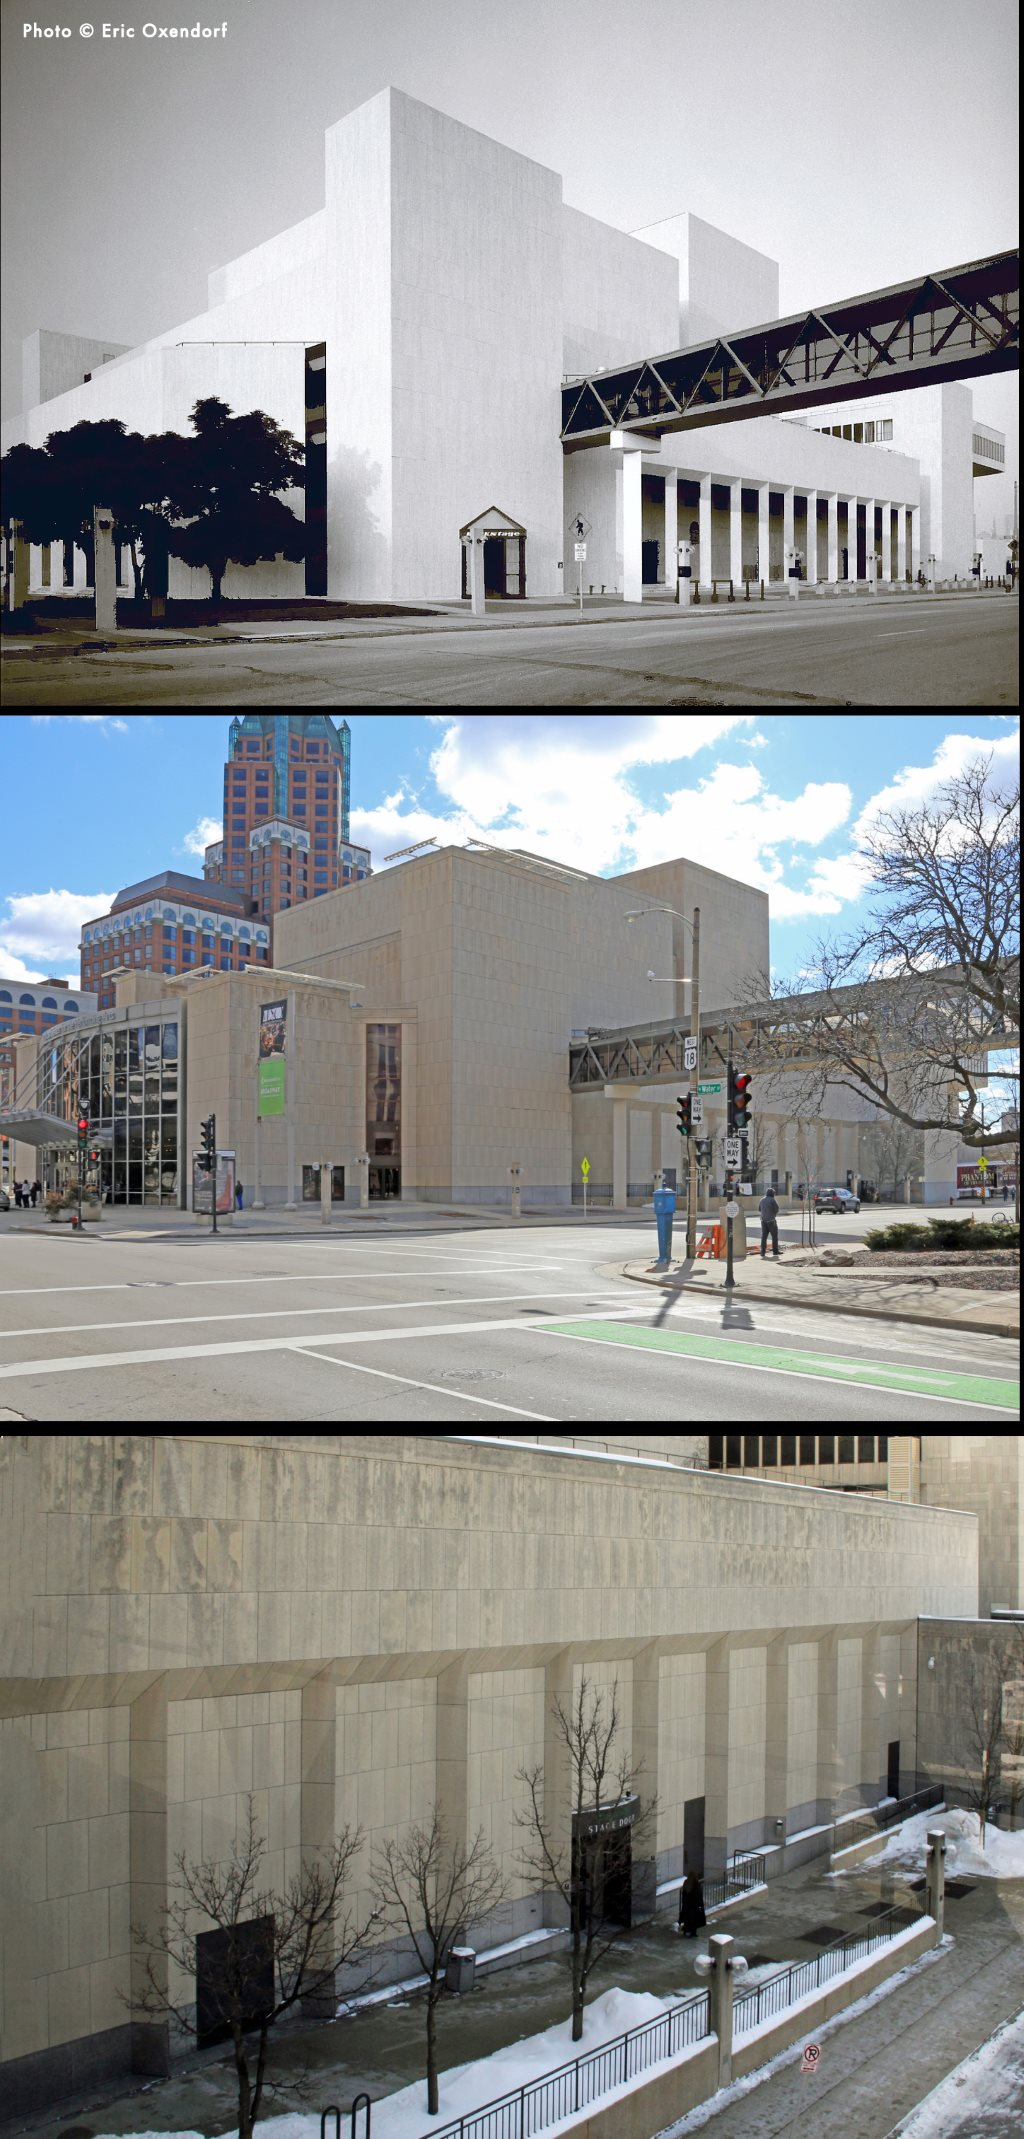 Top photo by Eric Oxendorf. Bottom two photos by John N. Vogel.